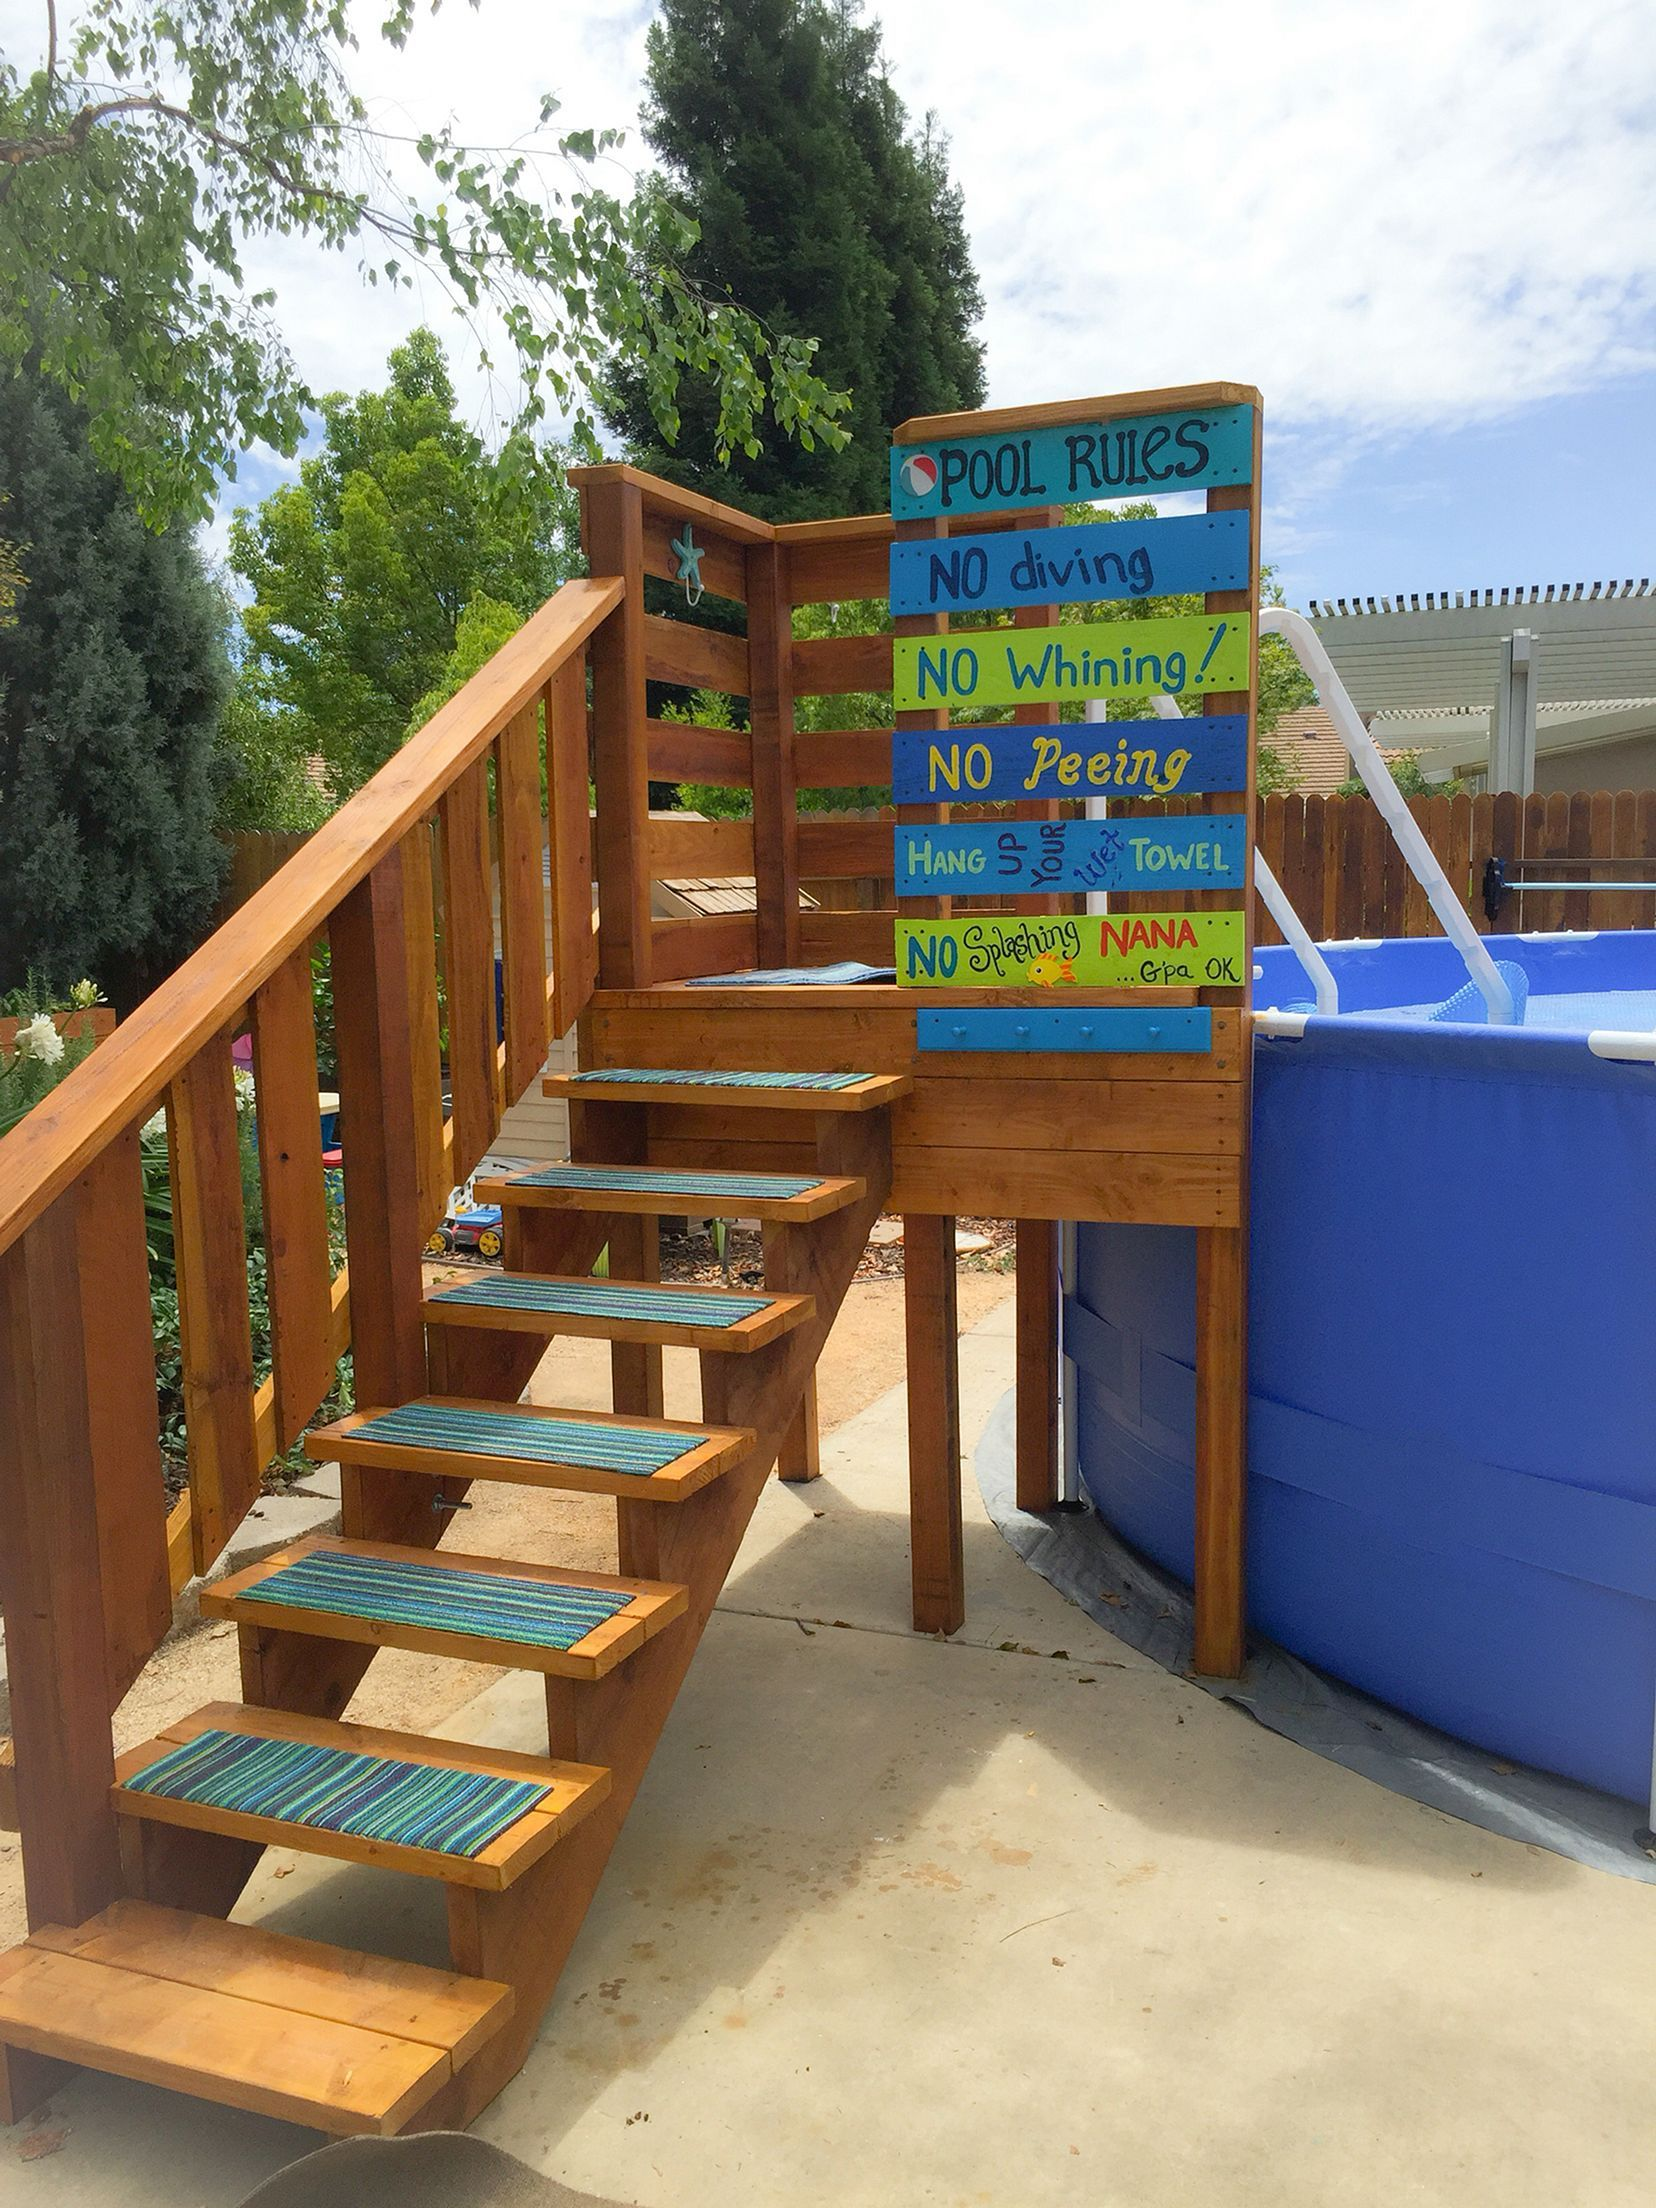 Top 47 diy above ground pool ideas on a budget outdoor - Above ground pool deck ideas on a budget ...